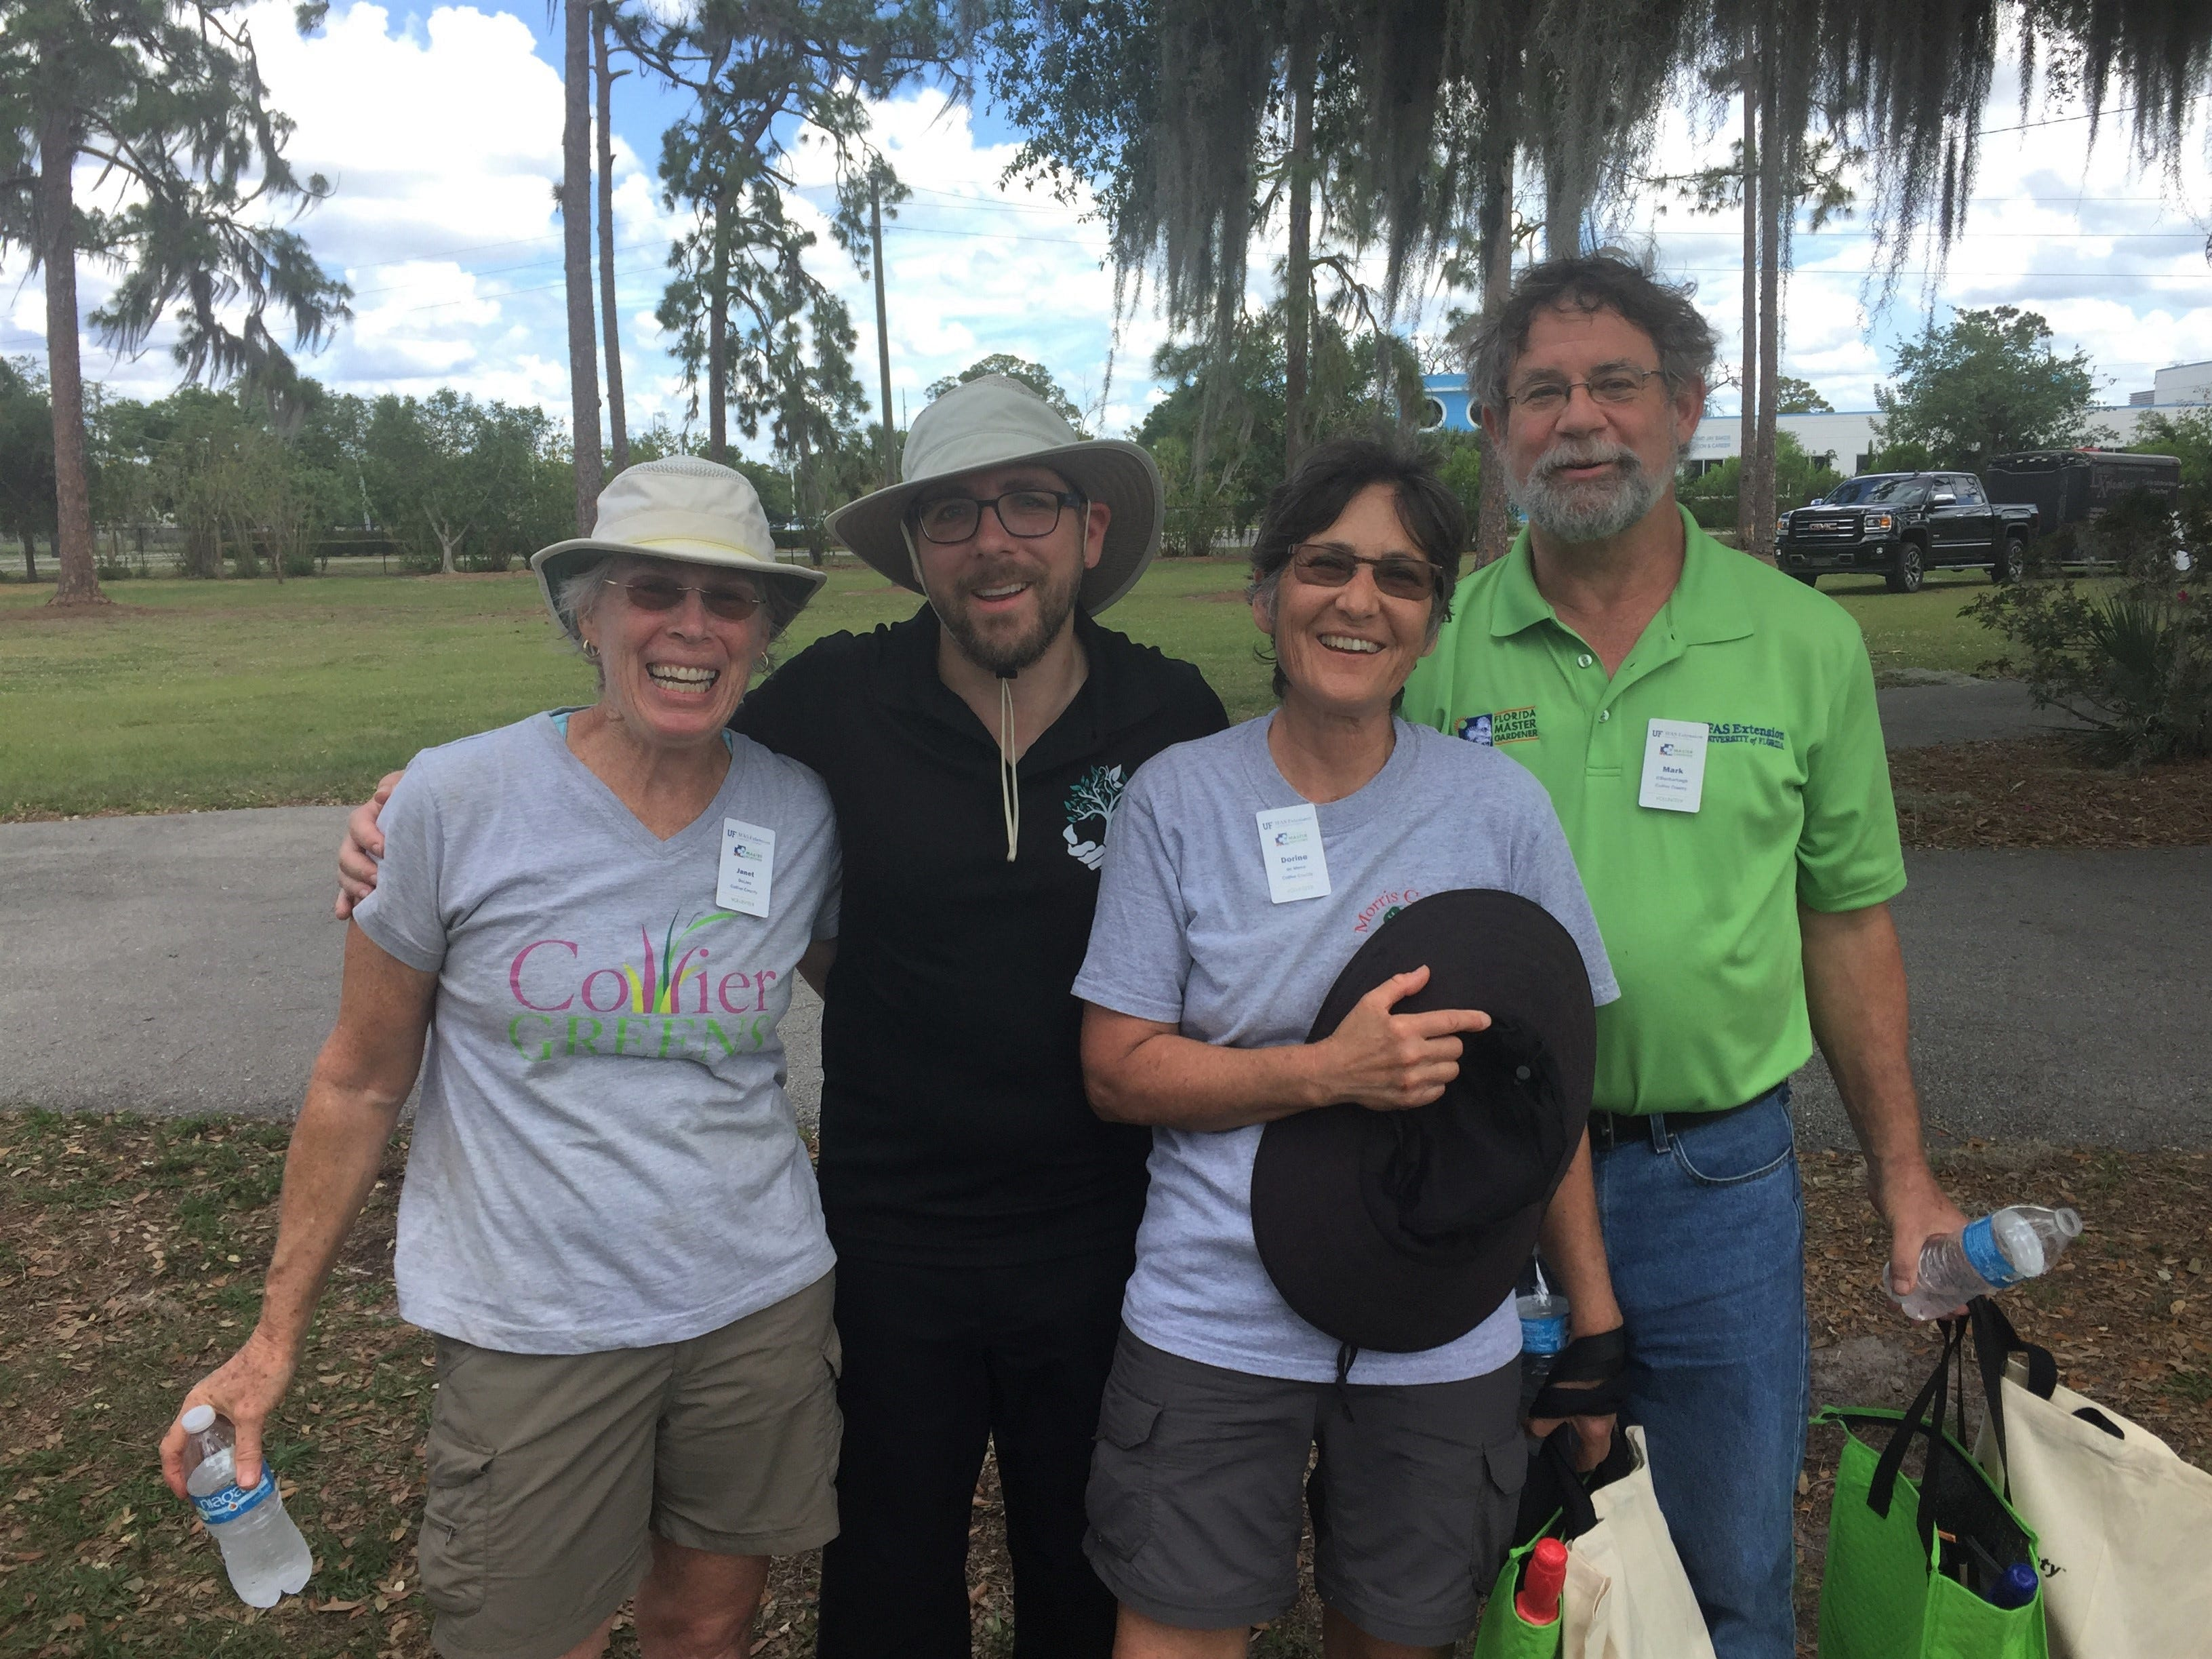 Informational stands and talks were part of the Earth Day event in Immokalee, with Collier County master gardeners participating; left, Janet DeLiso, Stephen Lawson, Dorine deMena and Mark O'Dochartaigh.